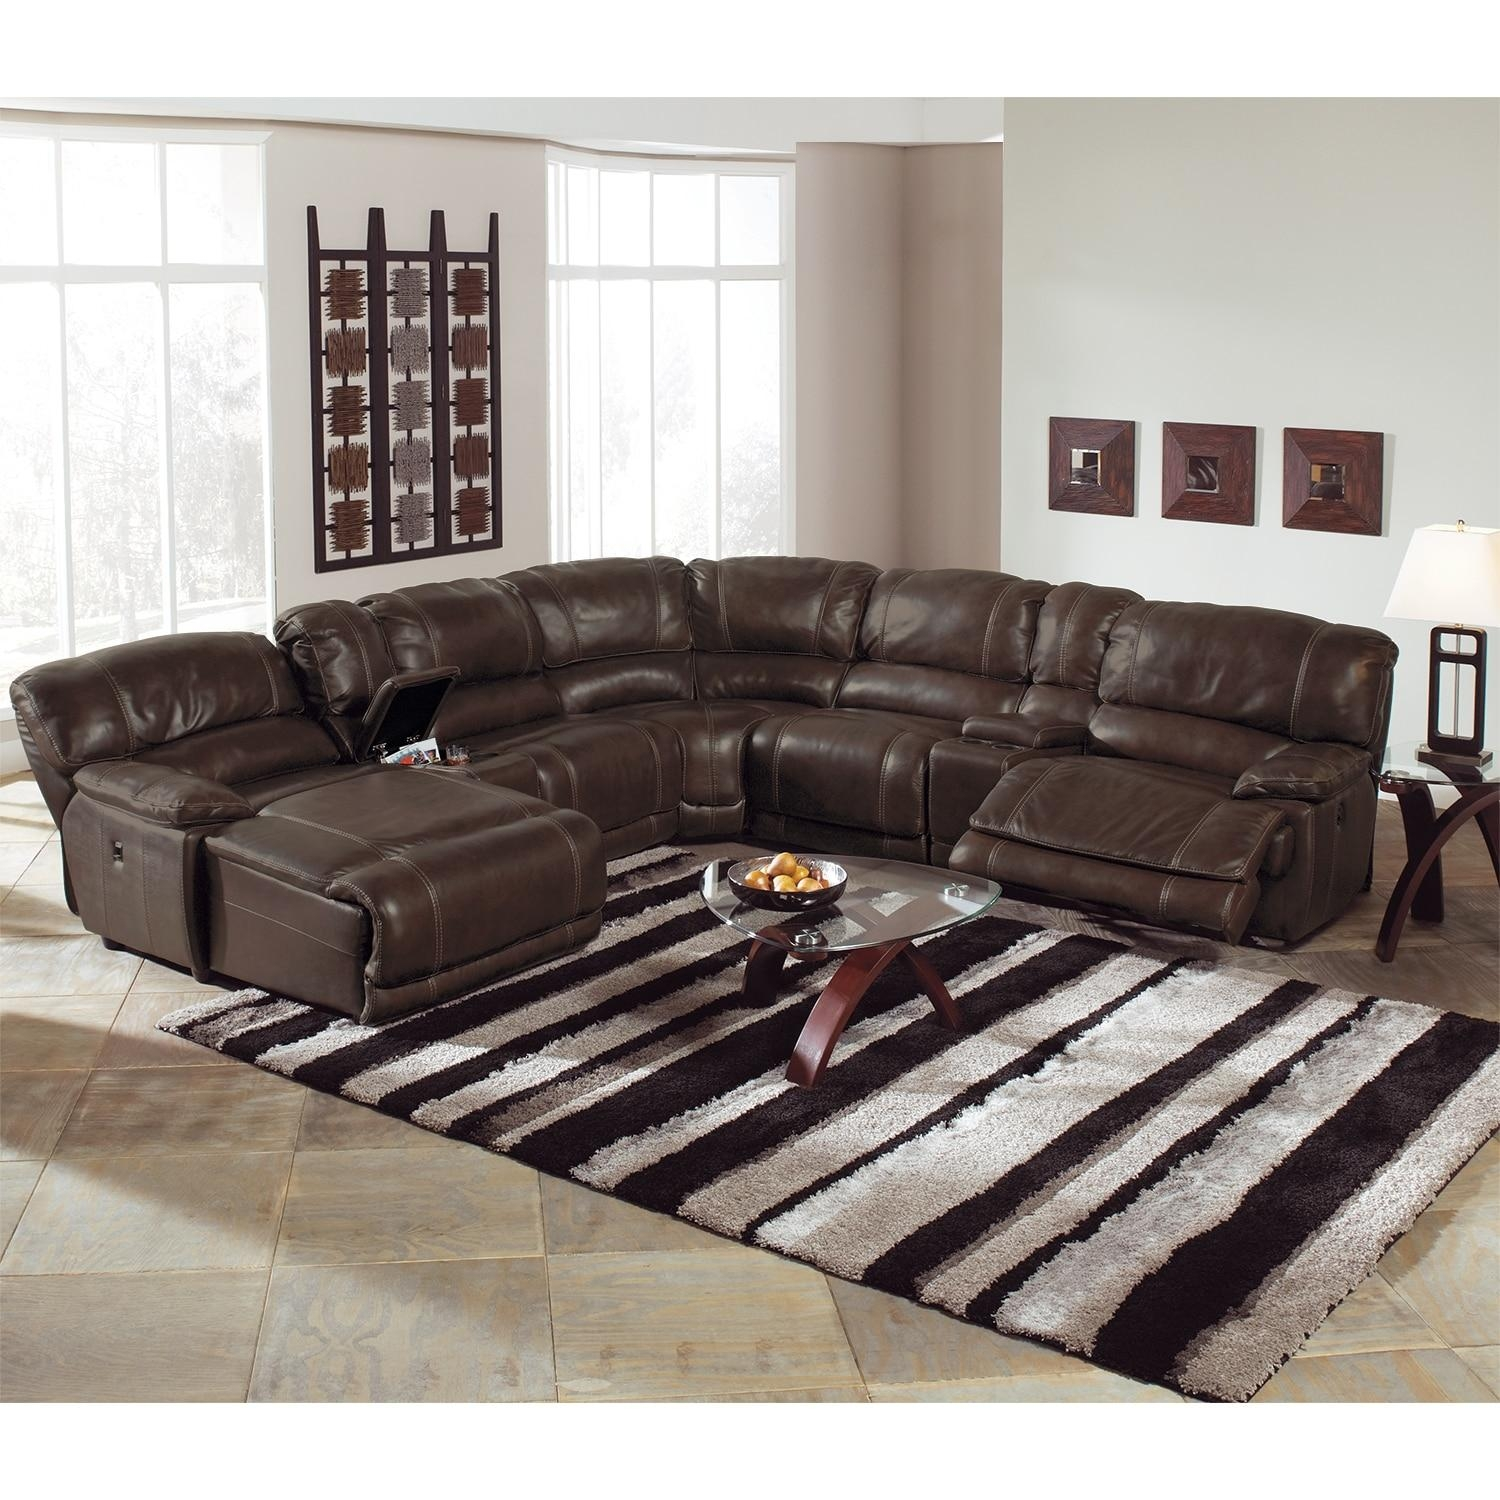 Furniture: Pretty Slipcovered Sectional Sofa For Comfy Your Living With 3 Piece Sectional Sofa Slipcovers (View 8 of 20)